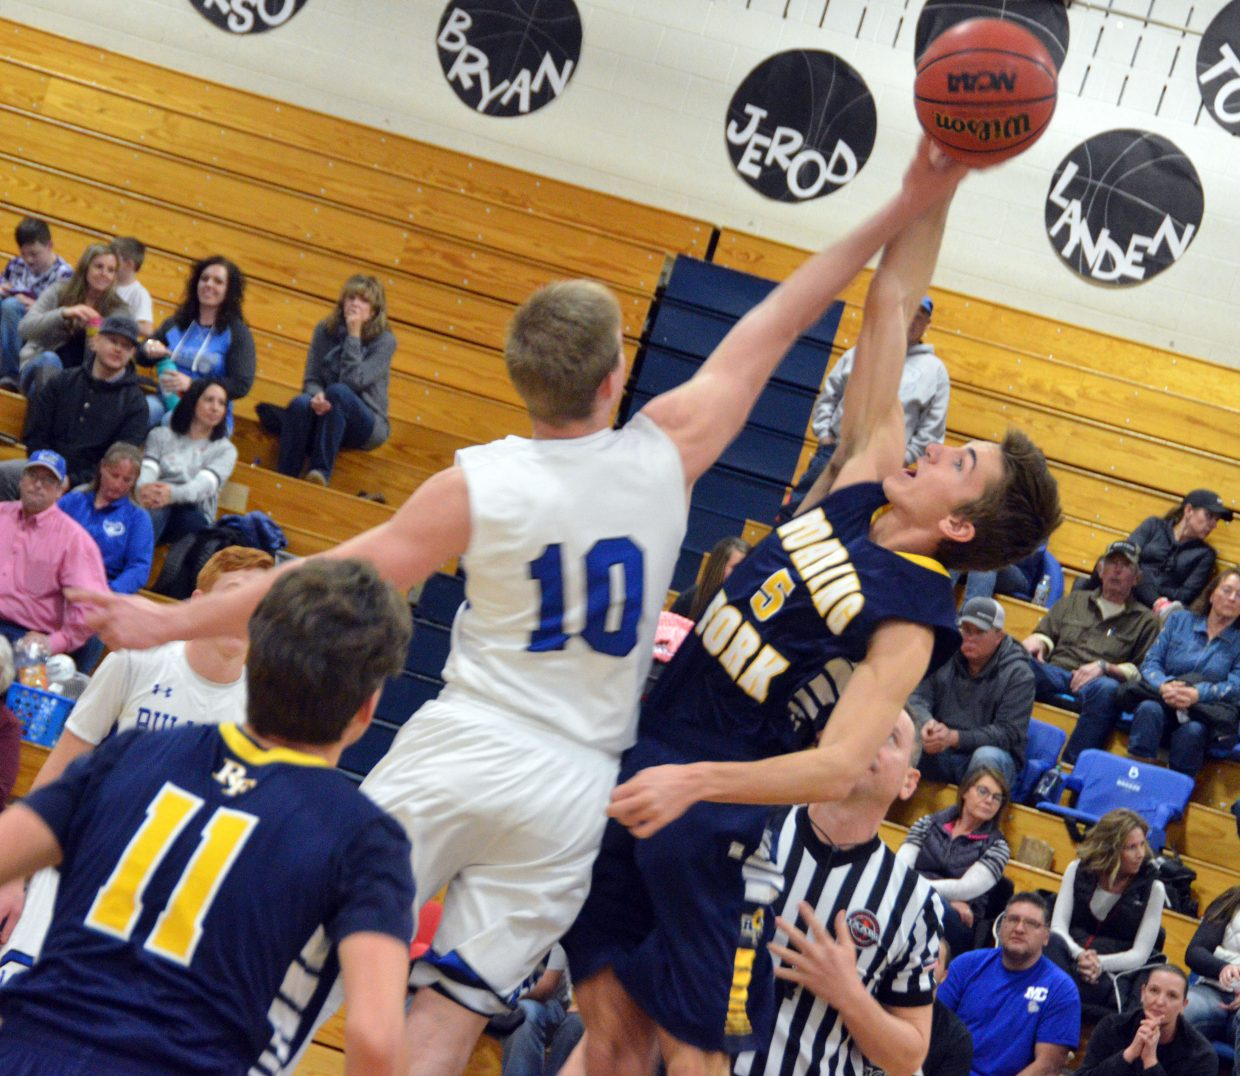 Moffat County High School's Colby Beaver takes the opening tipoff against Roaring Fork.